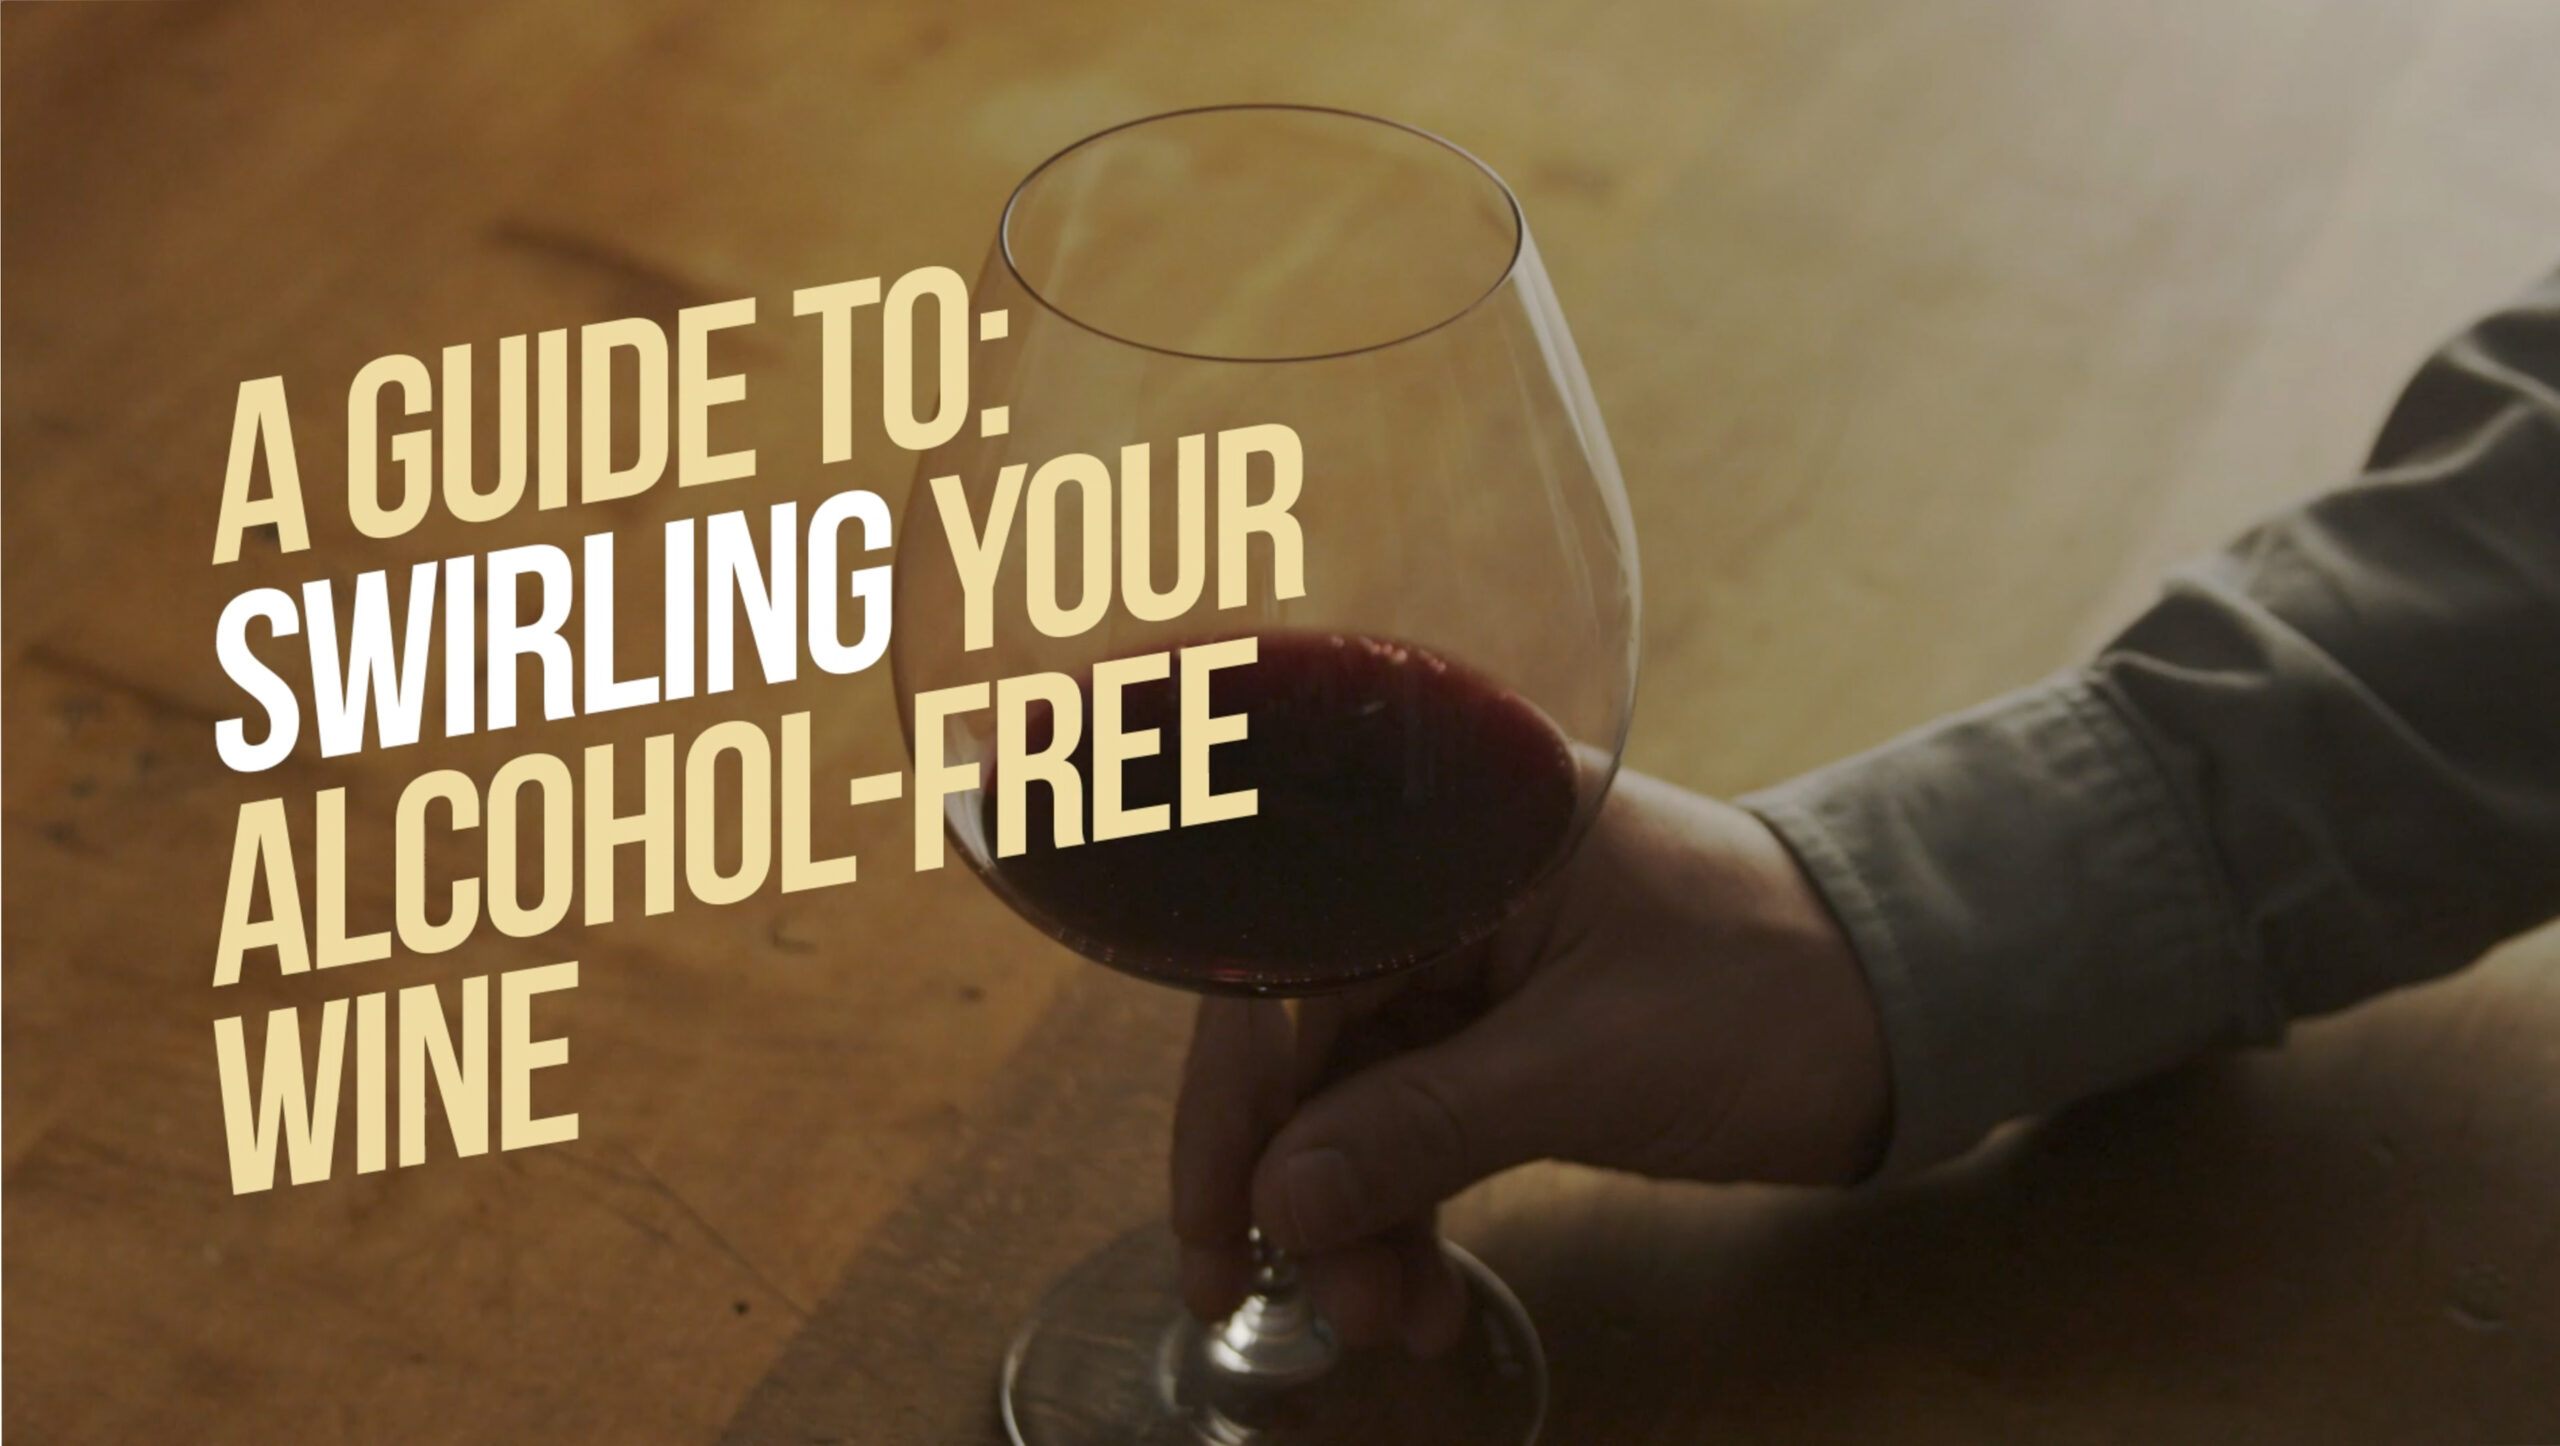 Rival House - A guide to: swirling your alcohol-free wine